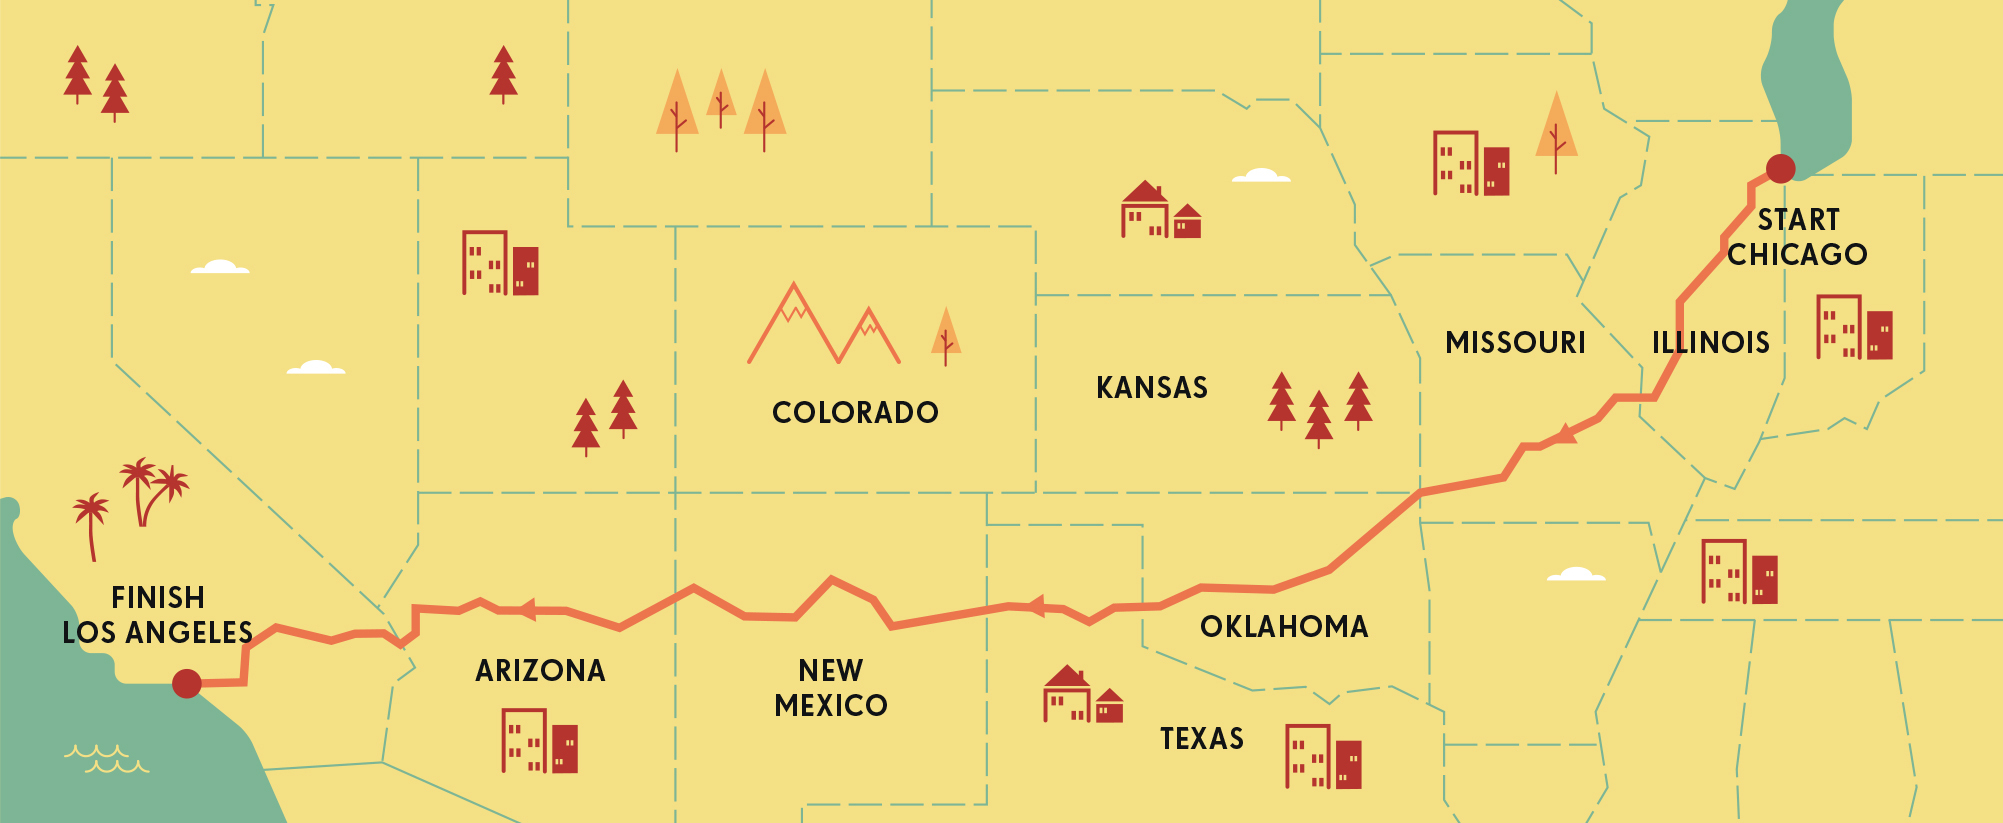 Route 66: How Much It Costs To Take The 2,400 Road Trip | Money - Map Of Route 66 From Chicago To California